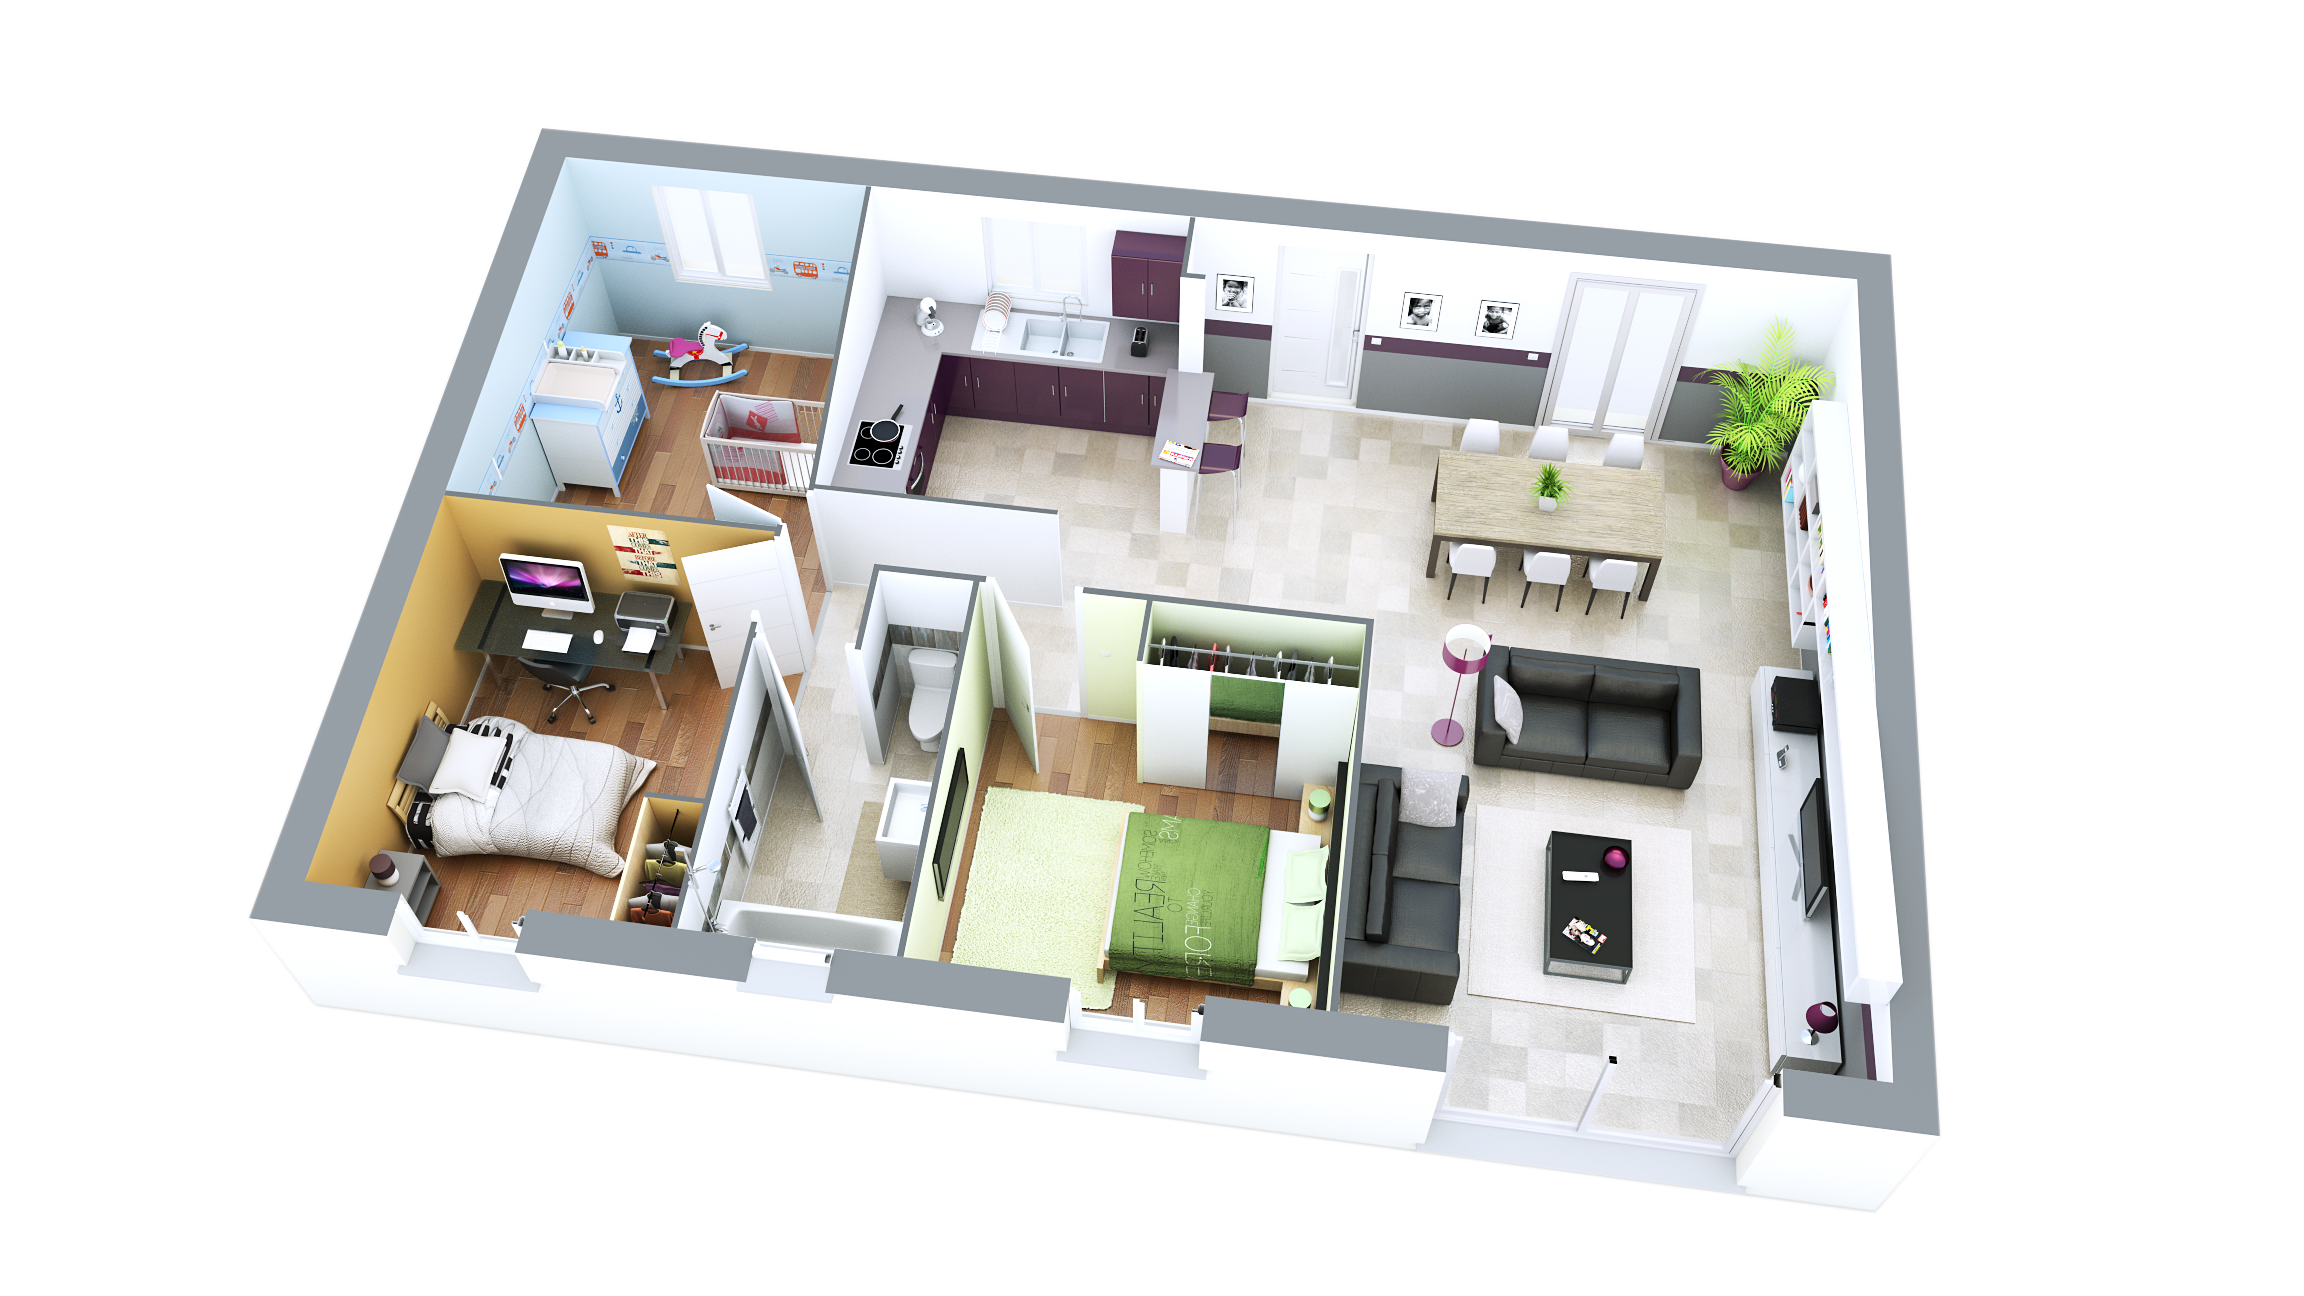 Mod le construction maison sun ardoise top duo plan et for Plan 3d amenagement interieur